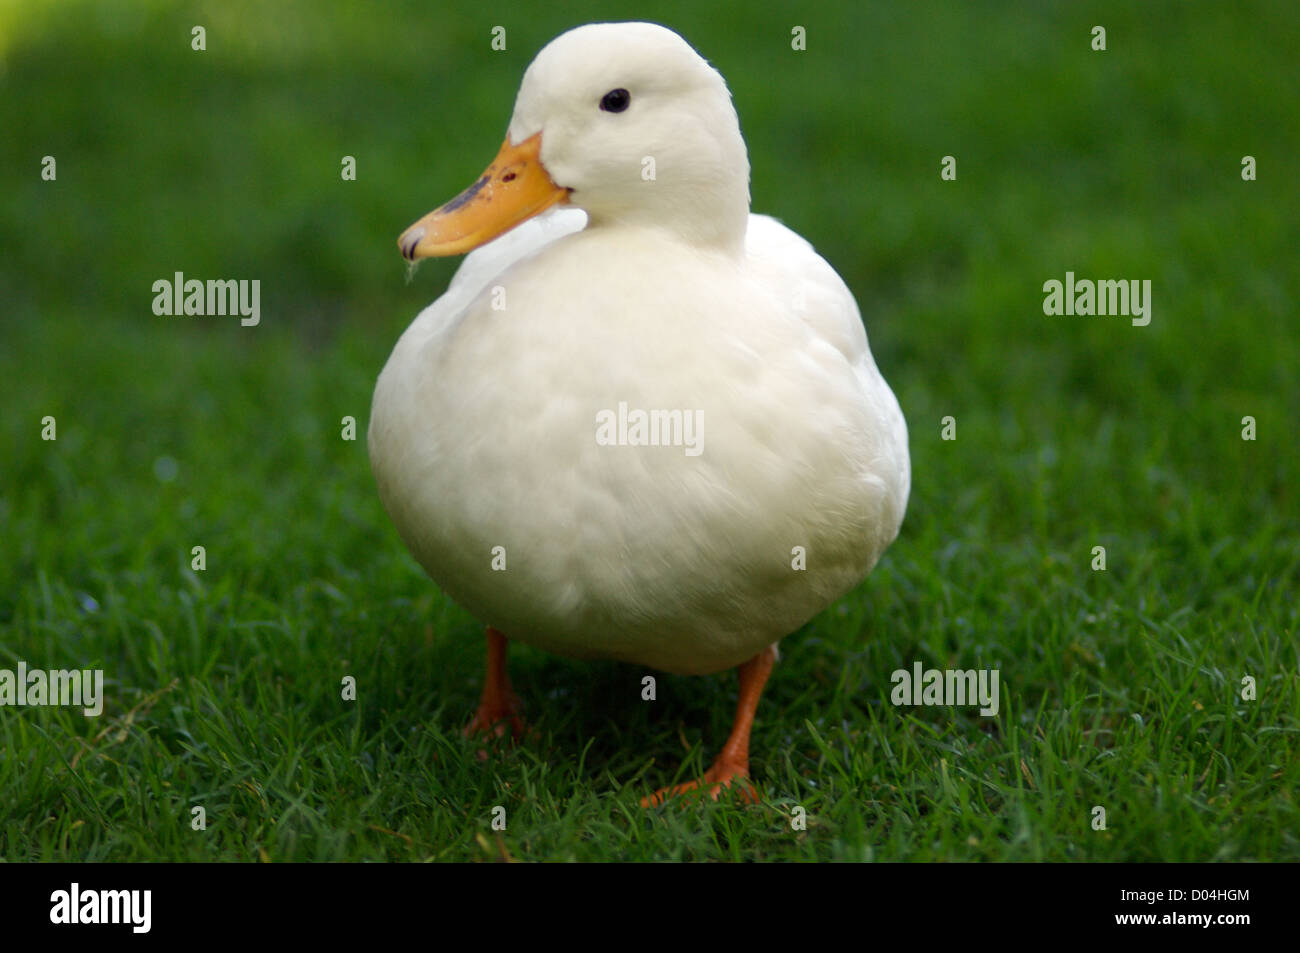 cute white duck on green grass - Stock Image